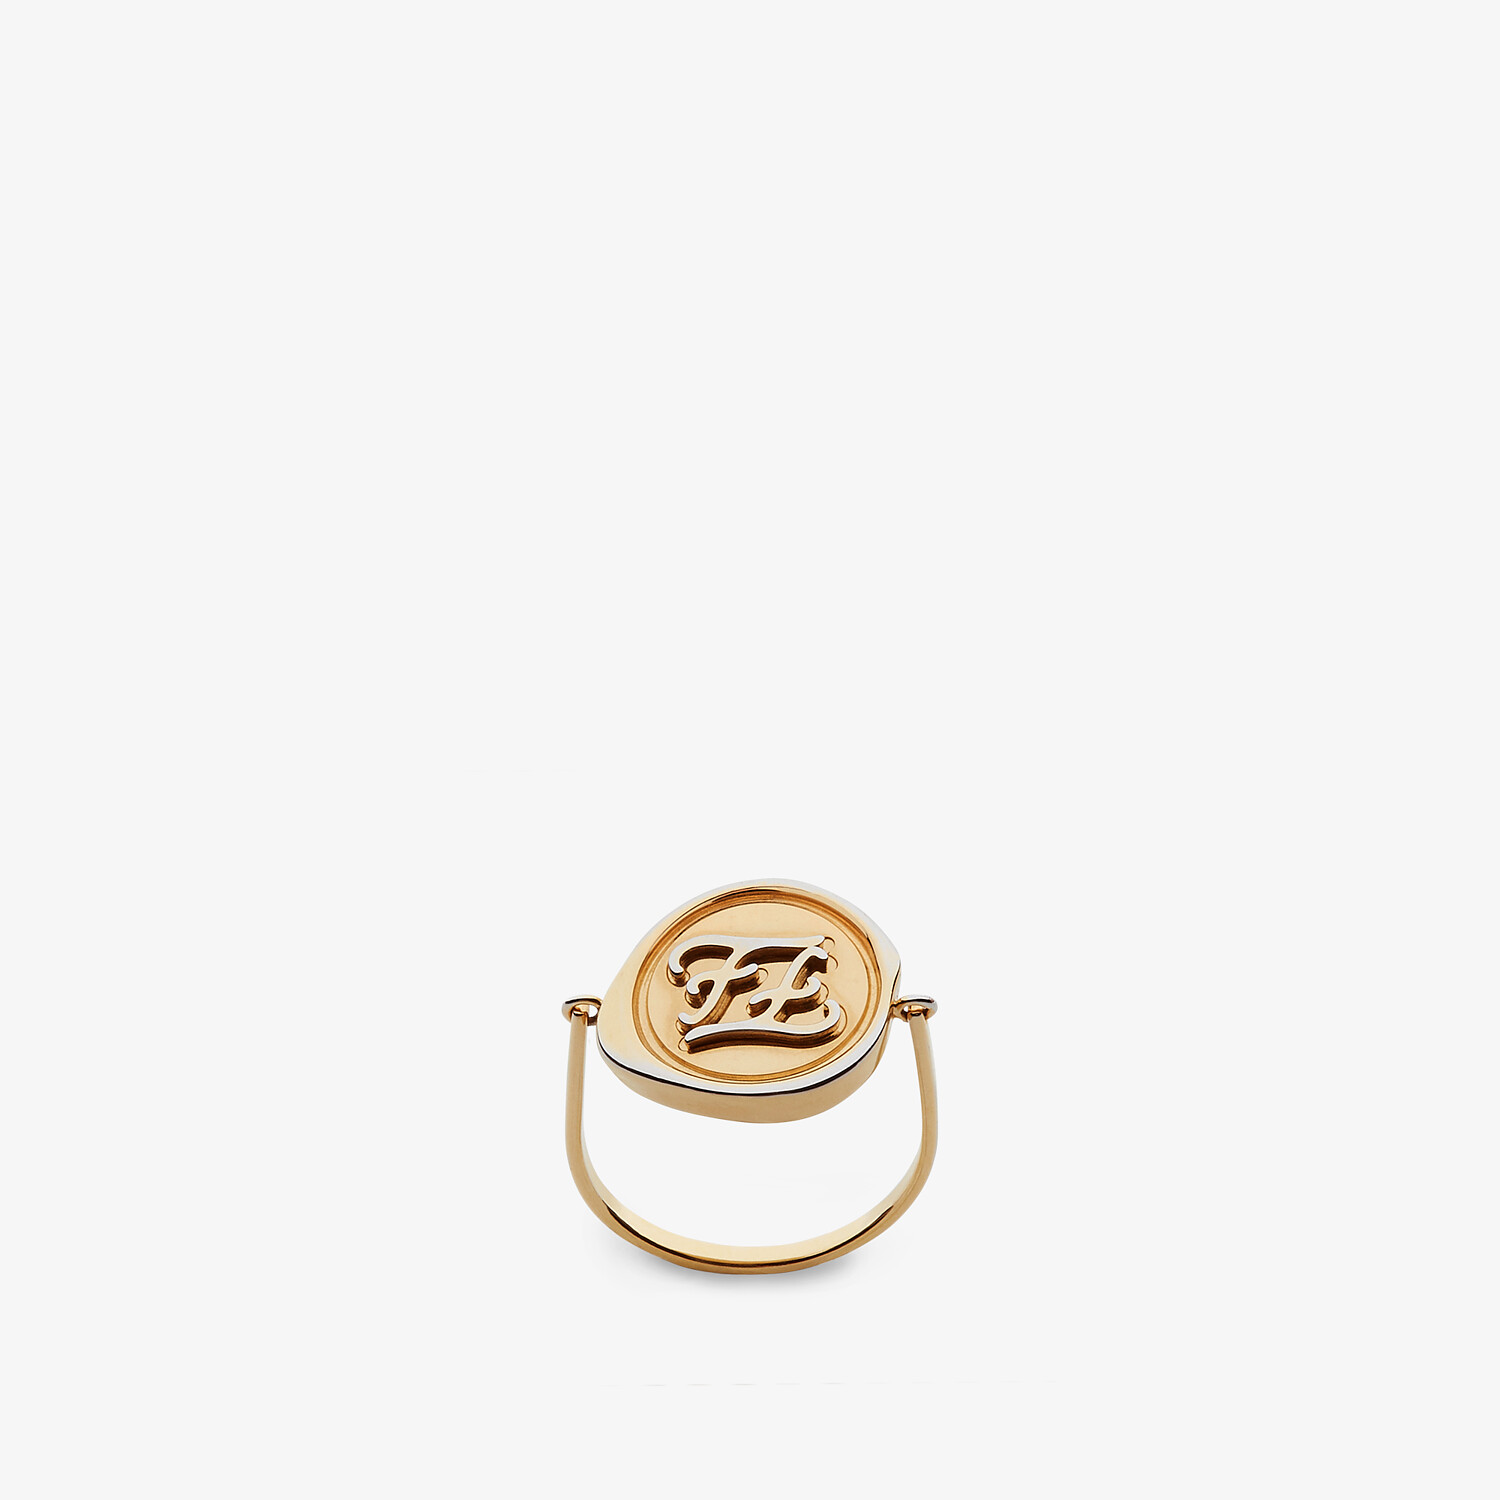 FENDI KARLIGRAPHY RING - Gold-colored ring - view 1 detail